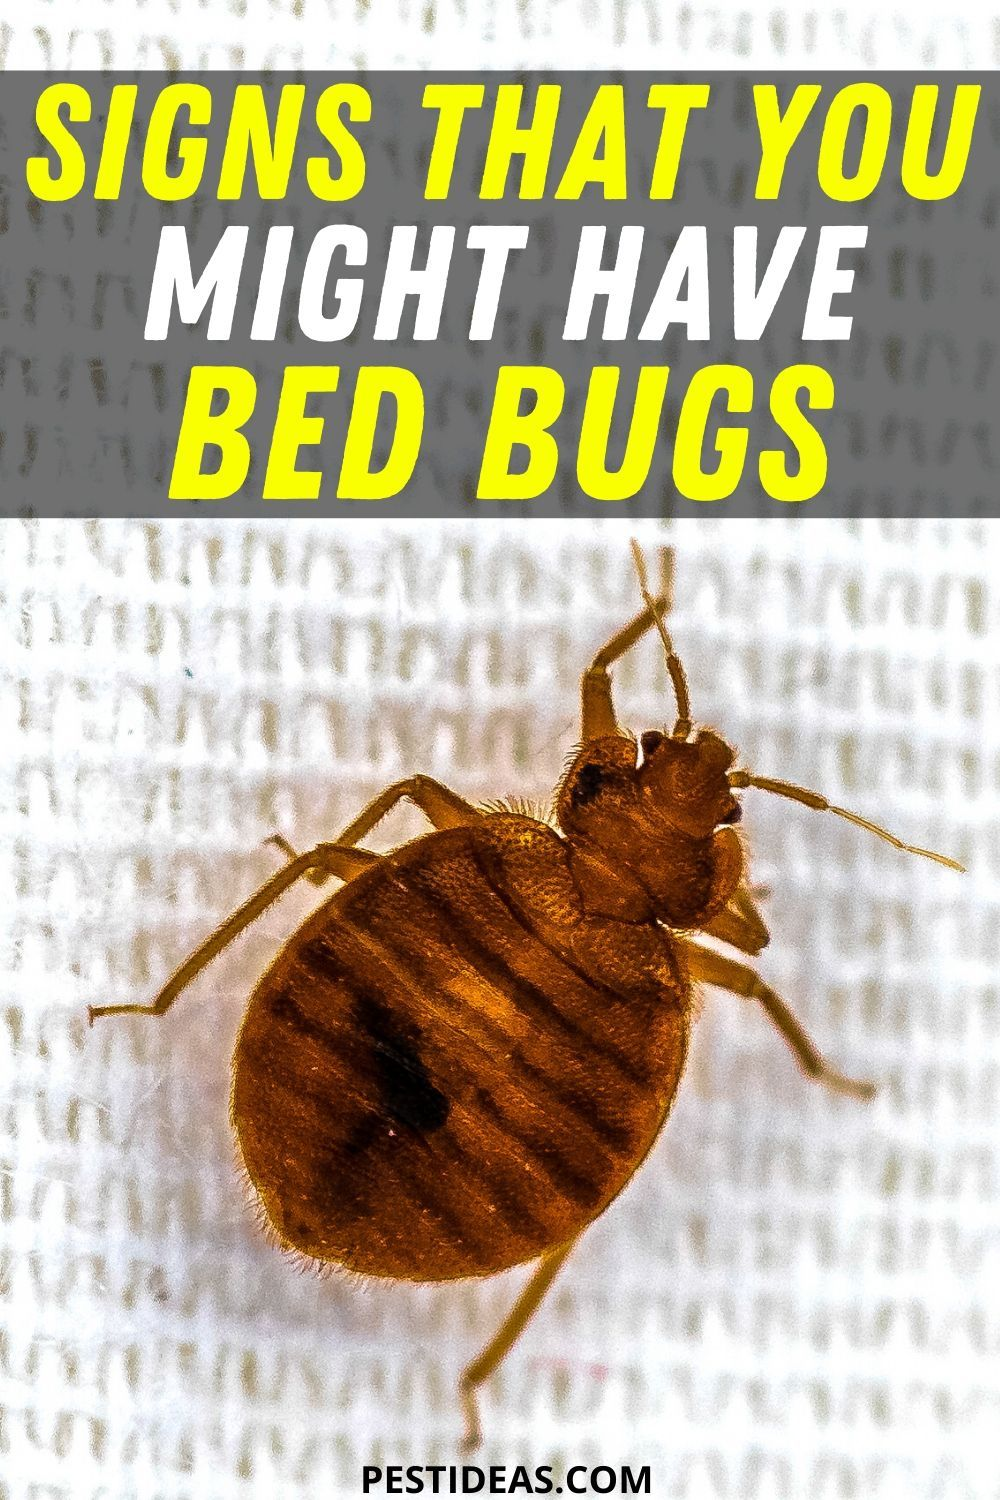 Signs That You Might Have Bed Bugs In 2020 Bed Bugs Signs Of Bed Bugs Kill Bed Bugs